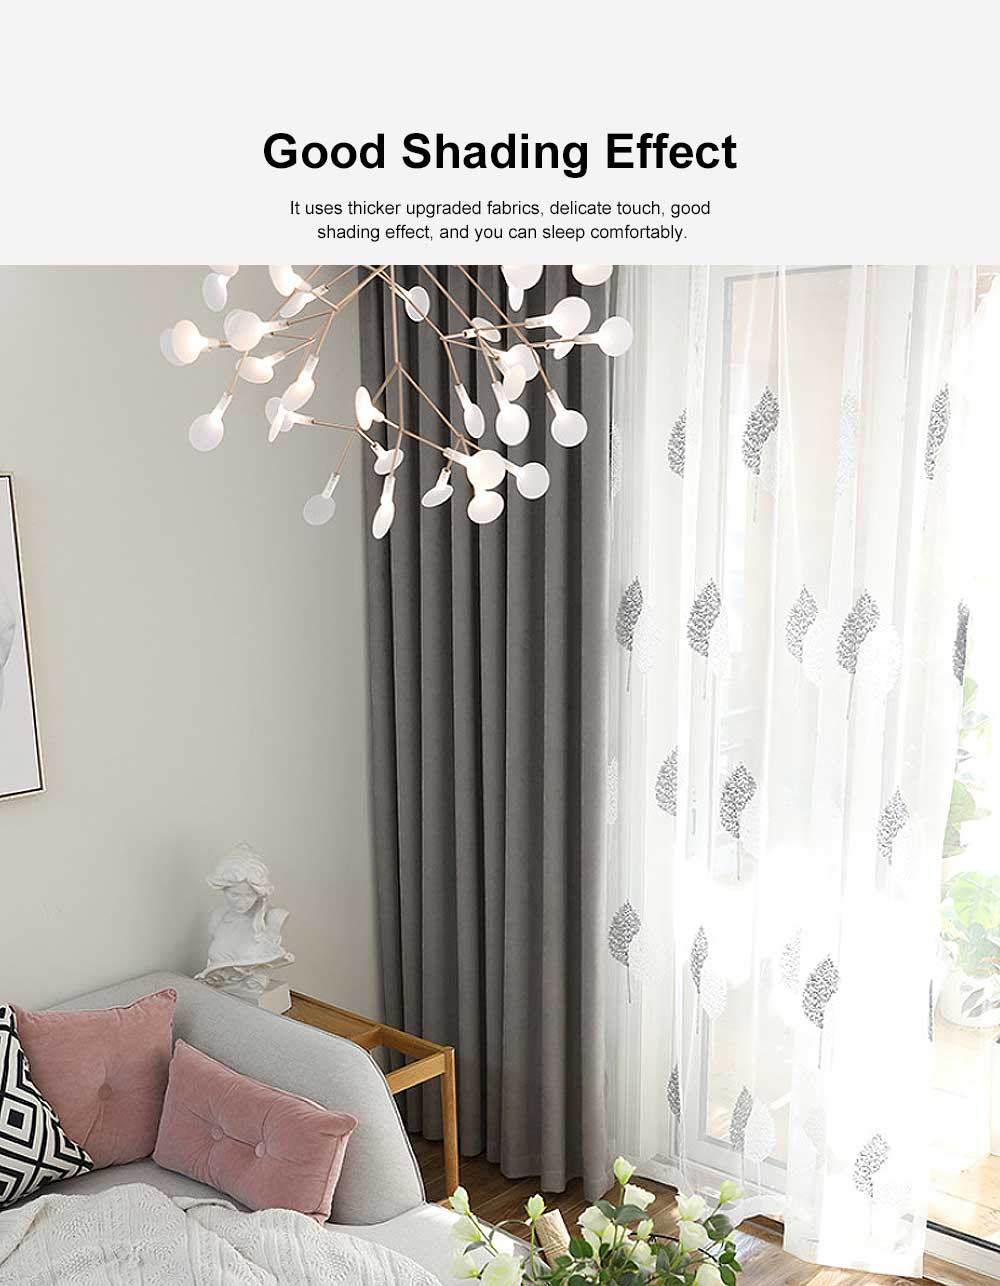 5 Color Nordic Style Curtain, Solid Color Curtains for Living Room Bedroom, Modern Minimalist Blackout Curtain 4